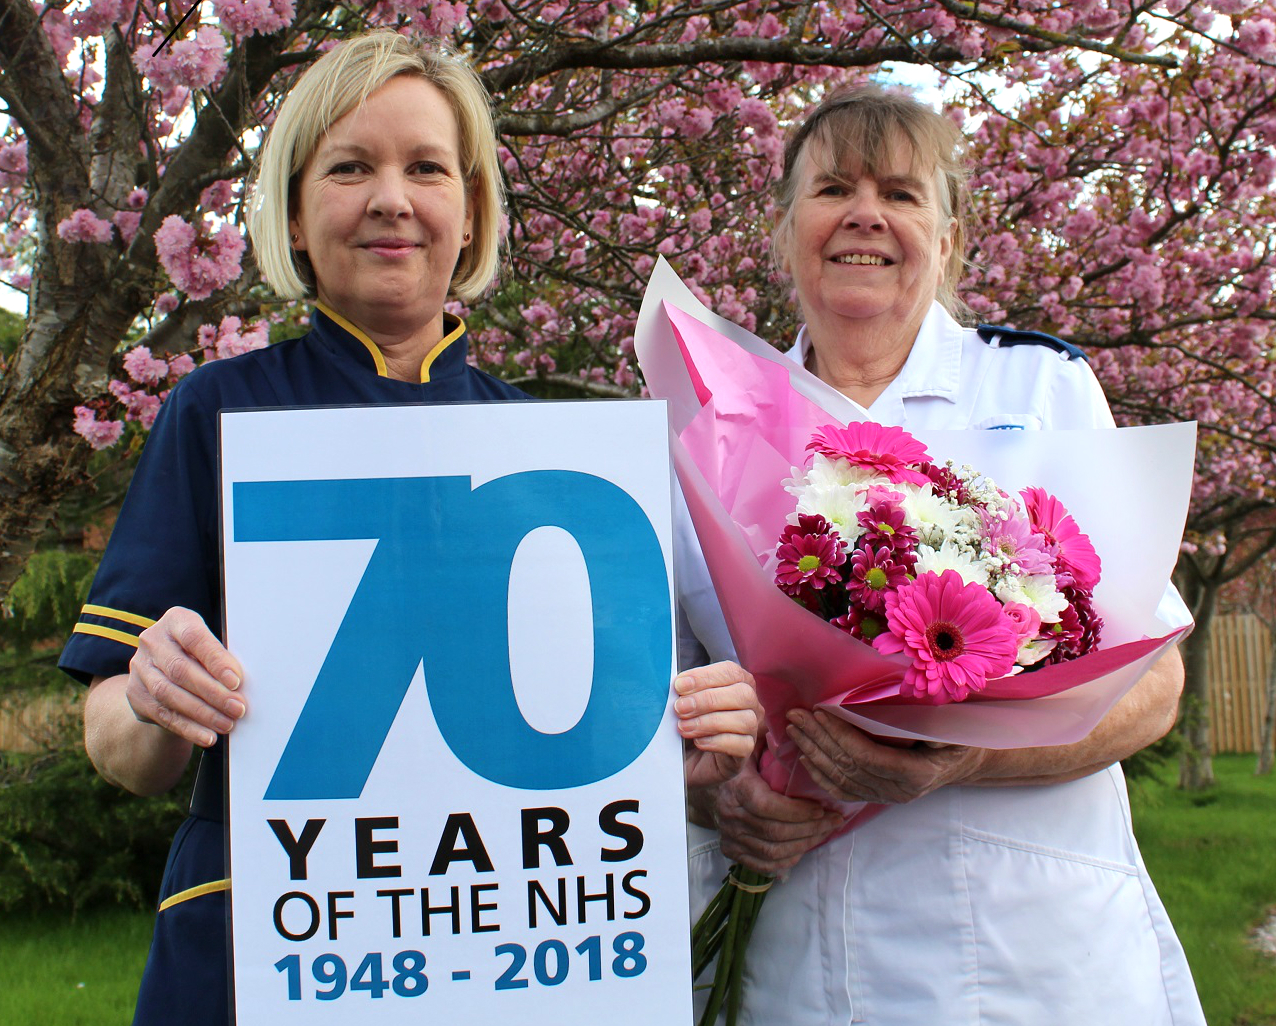 Left to right: Gaynor Westray, director of nursing and midwifery and nurse Kathy Shirley celebrate